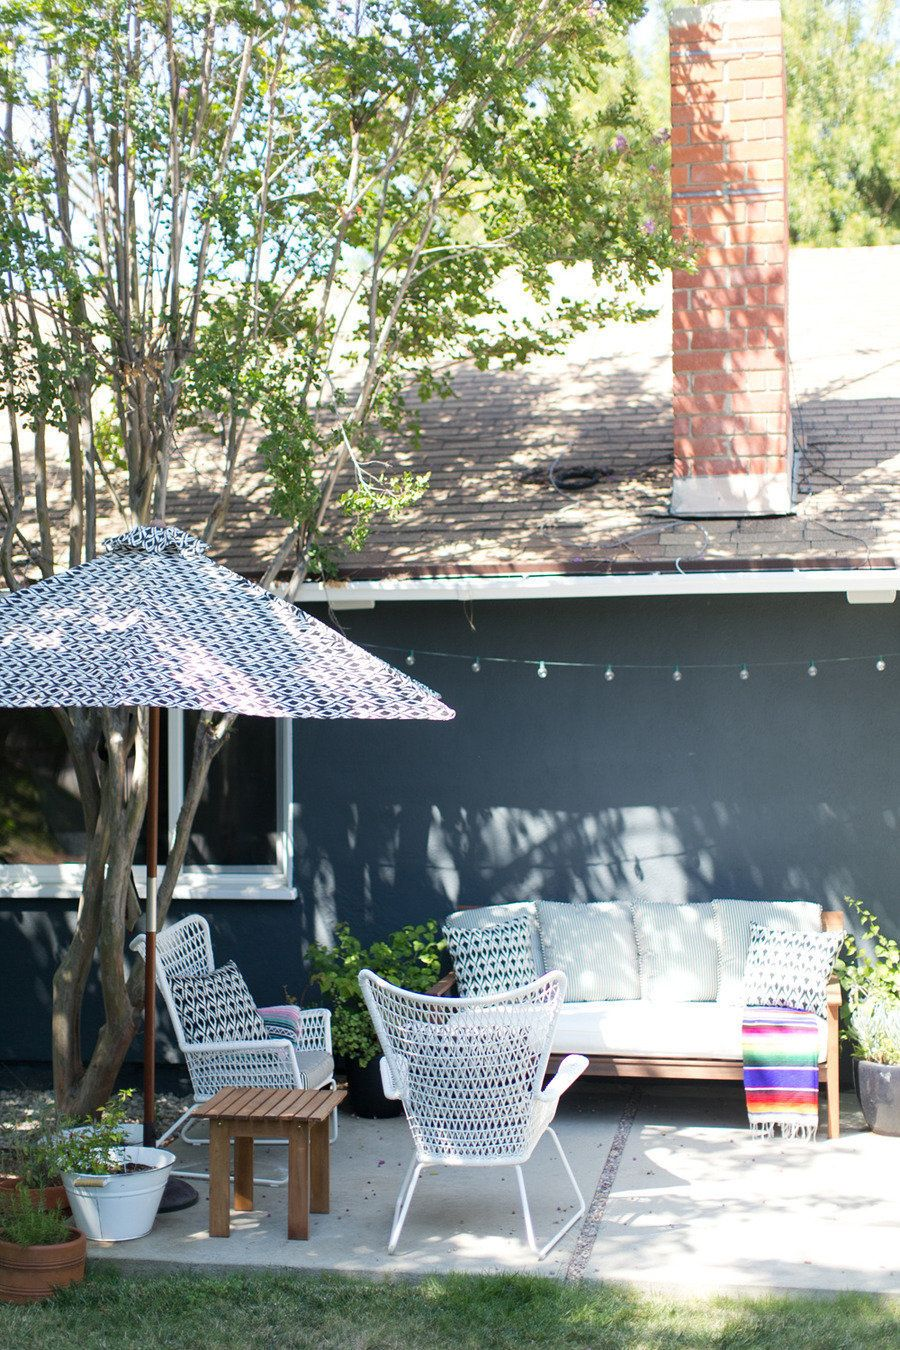 Amber Interiors Home Tour (With images) | Outdoor spaces ... on Amber Outdoor Living id=17163